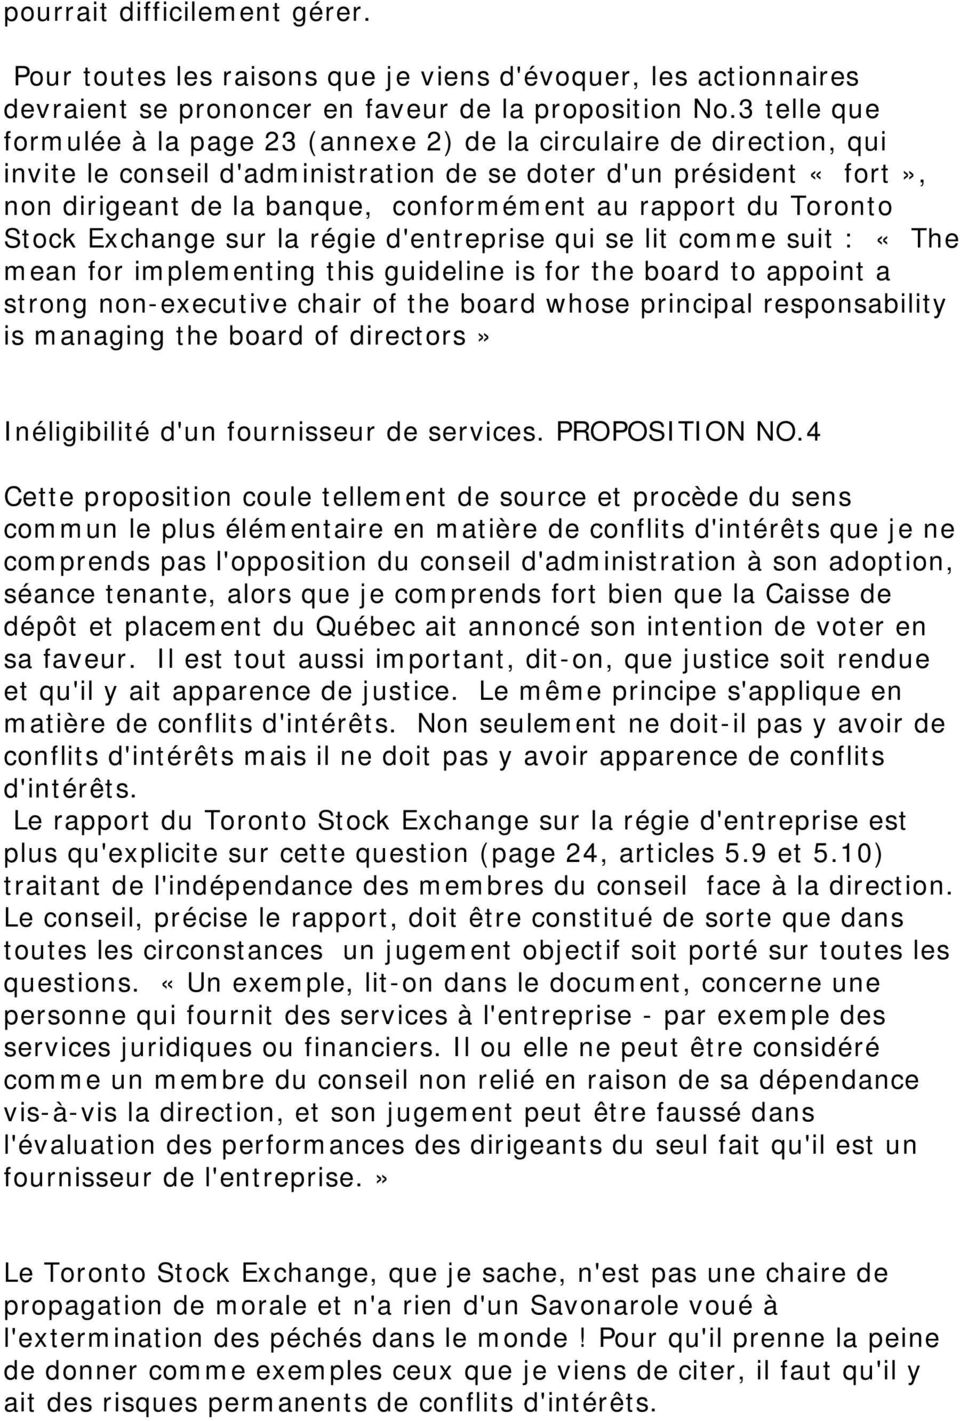 rapport du Toronto Stock Exchange sur la régie d'entreprise qui se lit comme suit : «The mean for implementing this guideline is for the board to appoint a strong non-executive chair of the board